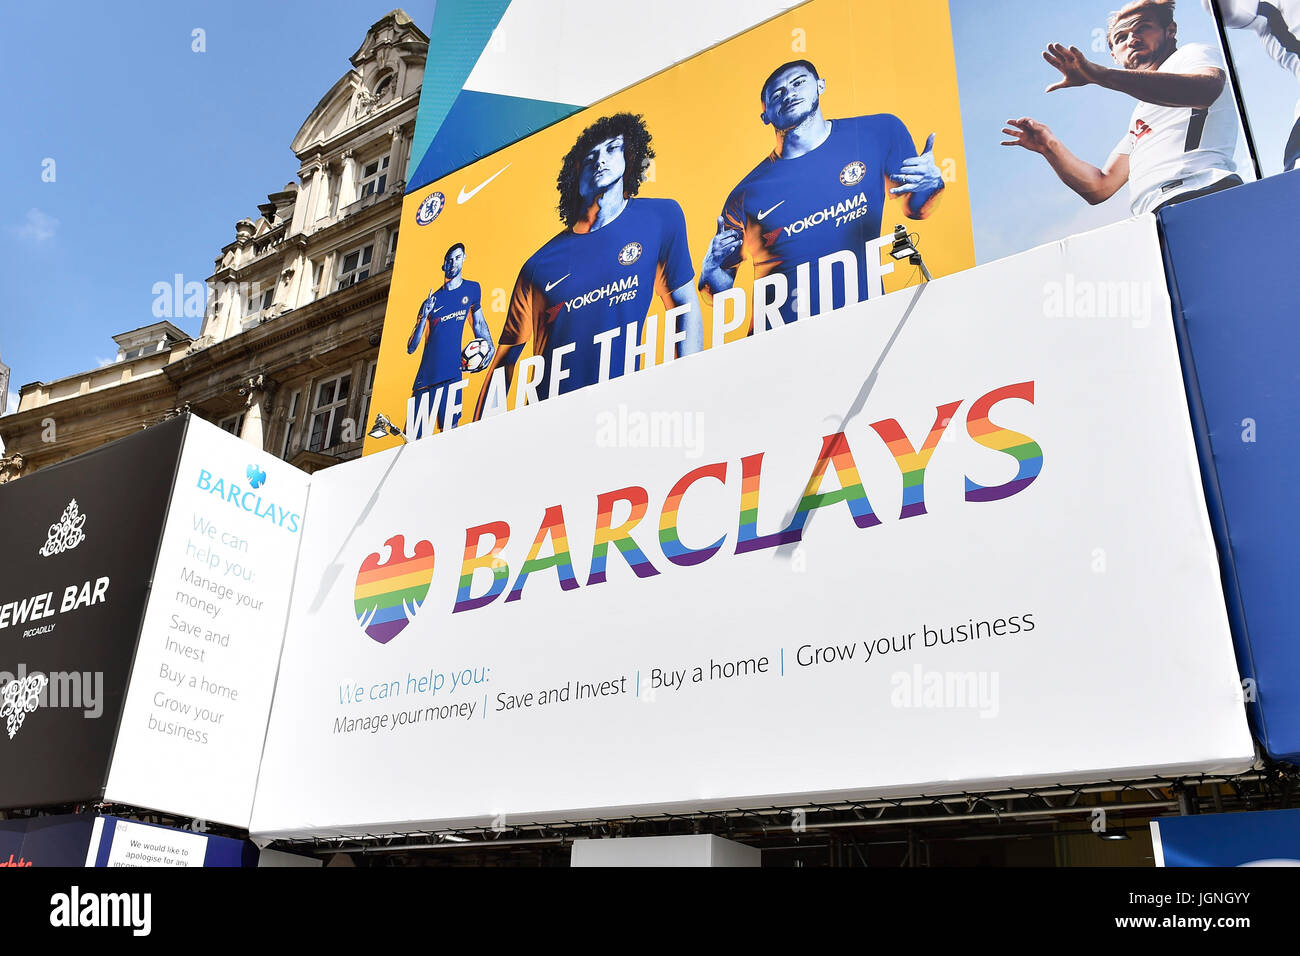 London, UK. 08th July, 2017. Barclays Bank, Piccadilly Circus branch decorated in Rain Bow colour in celebration - Stock Image